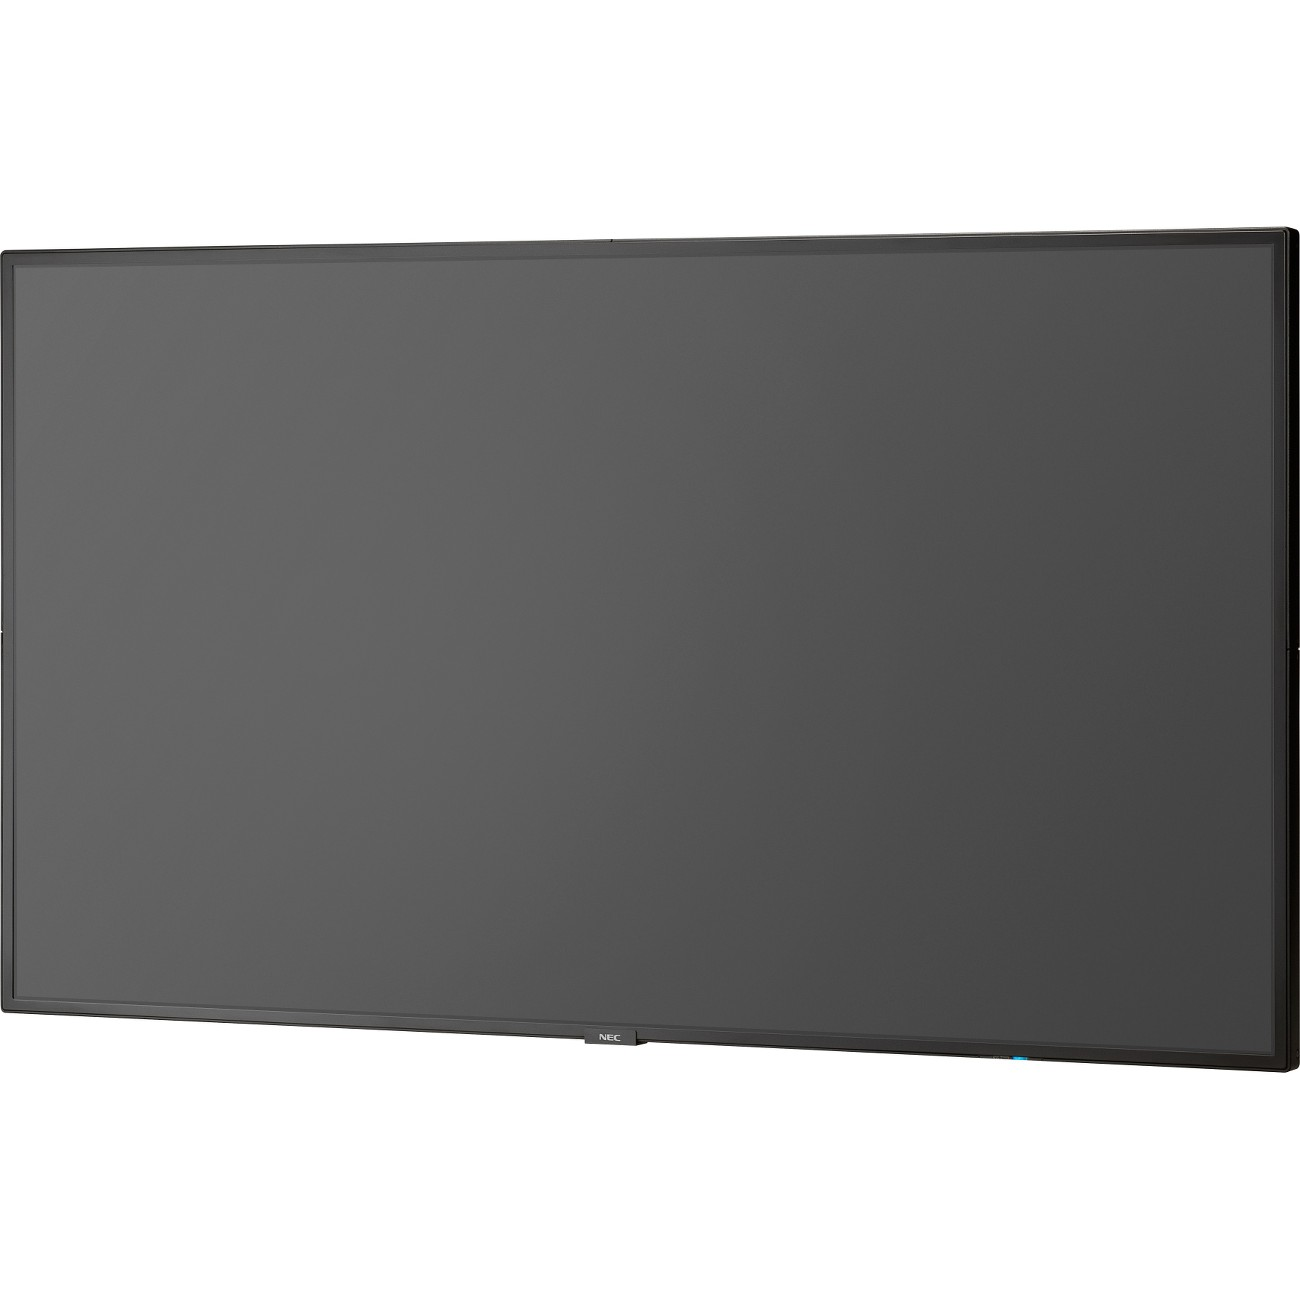 "NEC Display 55"" Commercial-Grade Large Format Display with Integrated Tuner (v554-avt2) by NEC"